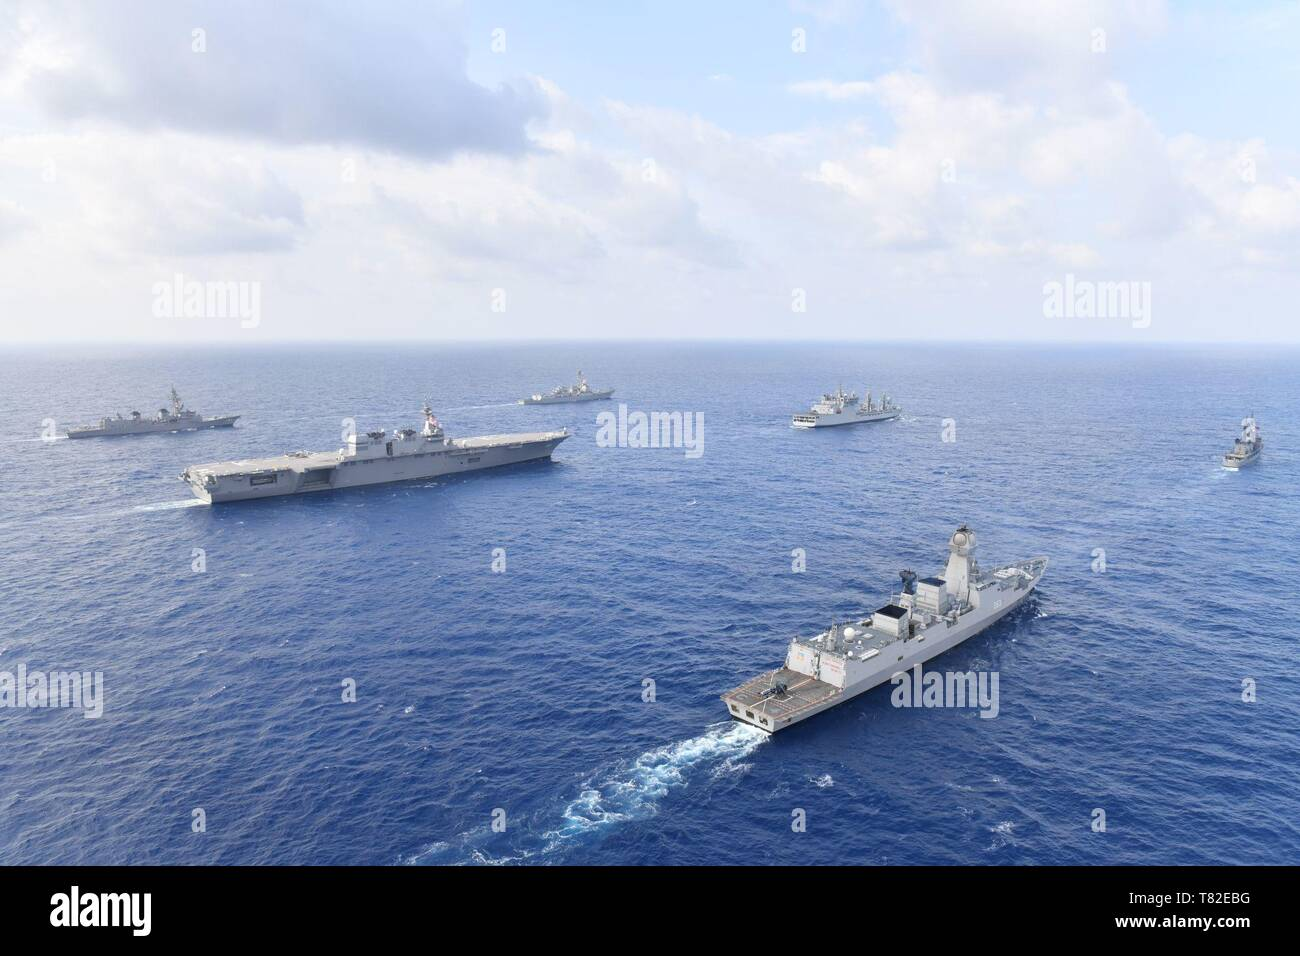 190505-N-XX012-0002 SOUTH CHINA SEA (May 5, 2019)  The U.S. Navy guided-missile destroyer USS William P. Lawrence (DDG 110), upper left, transits international waters of the South China Sea with the Indian navy destroyer INS Kolkata (D 63) and tanker INS Shakti (A 57); the Japan Maritime Self-Defense Force helicopter carrier JS Izumo (DDH 183) and destroyer JS Murasame (DD 101); and the Republic of the Philippines navy patrol ship BRP Andres Bonifacio (PS 17). (U.S. Navy photo courtesy of the Japan Maritime Self-Defense Force/Released) - Stock Image